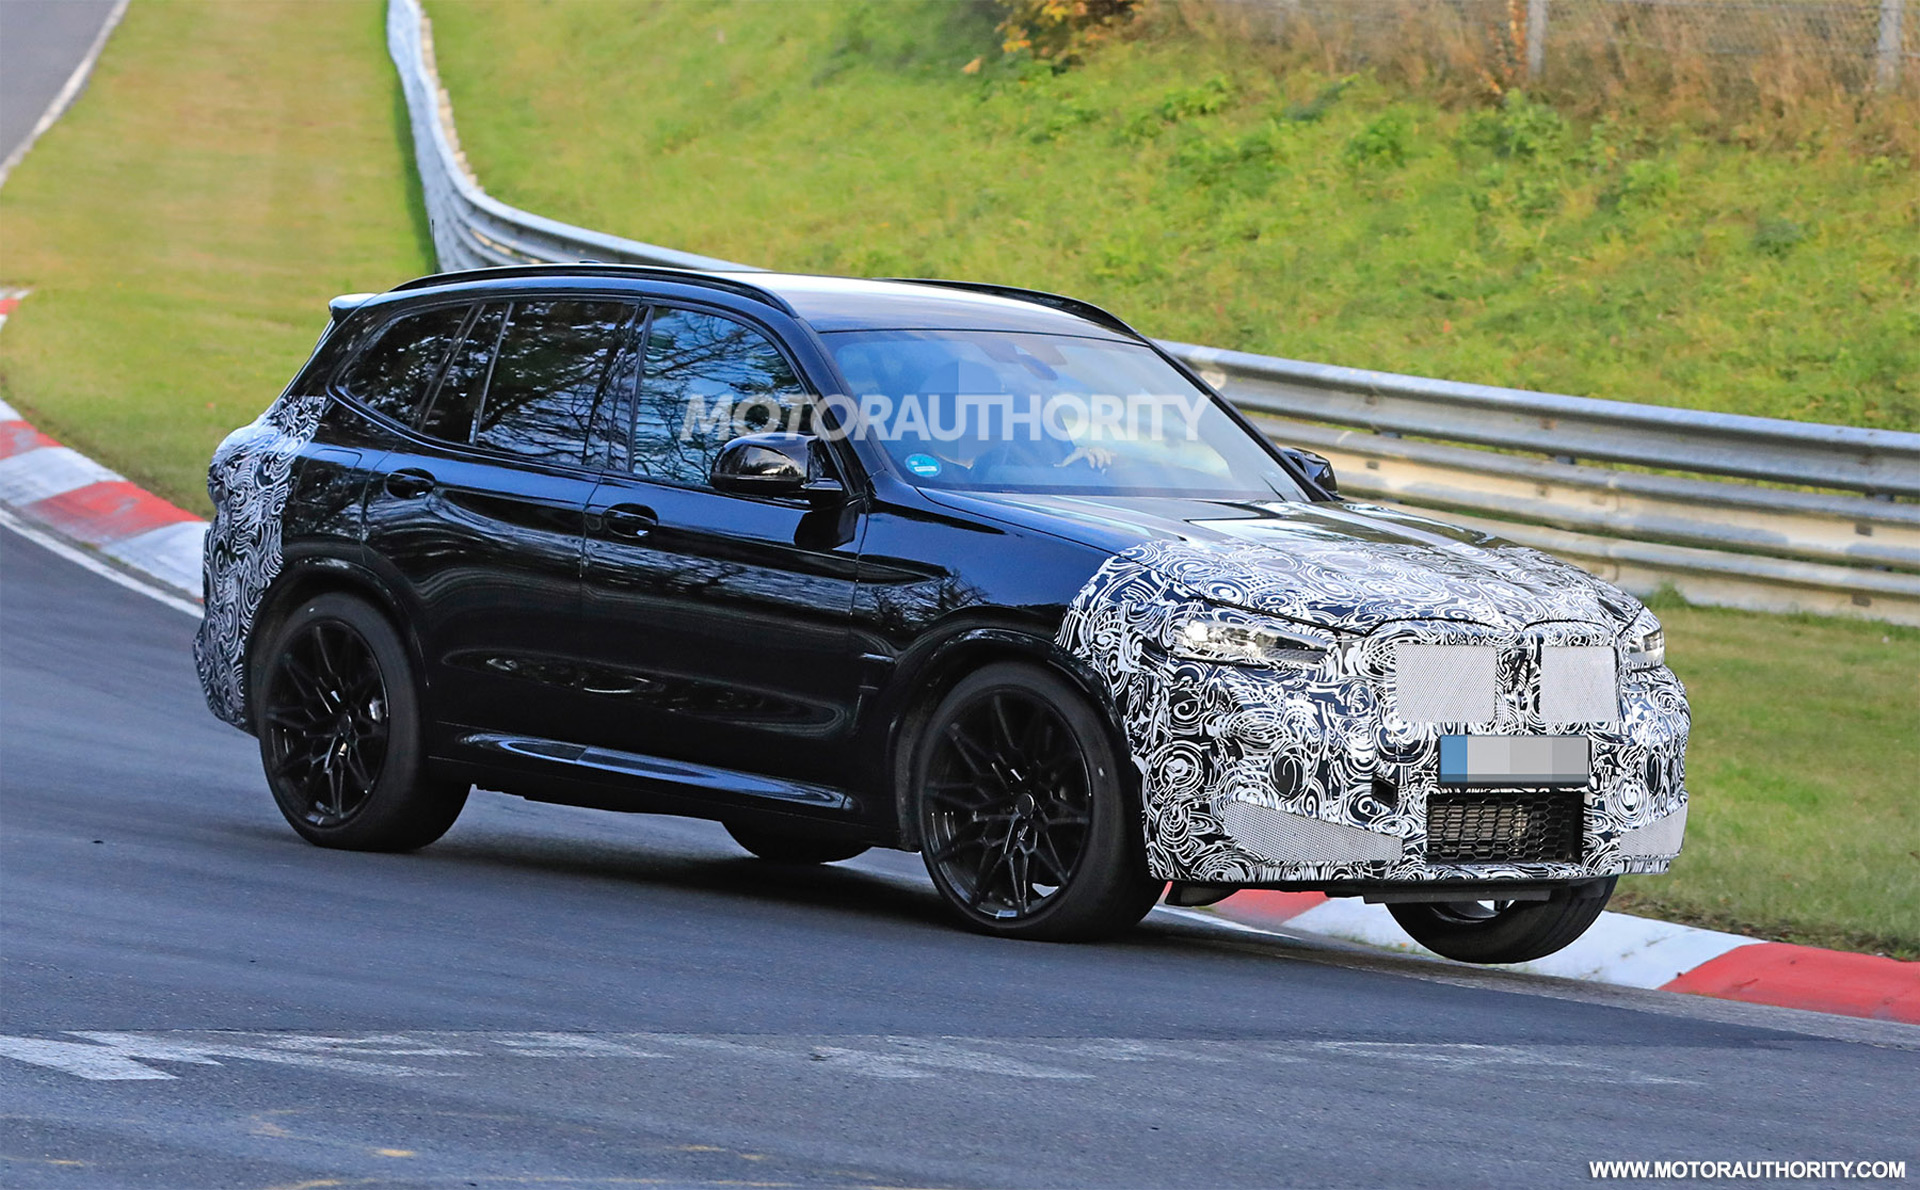 2022 Bmw X3 M Spy Shots New Look Coming For High Performance Suv